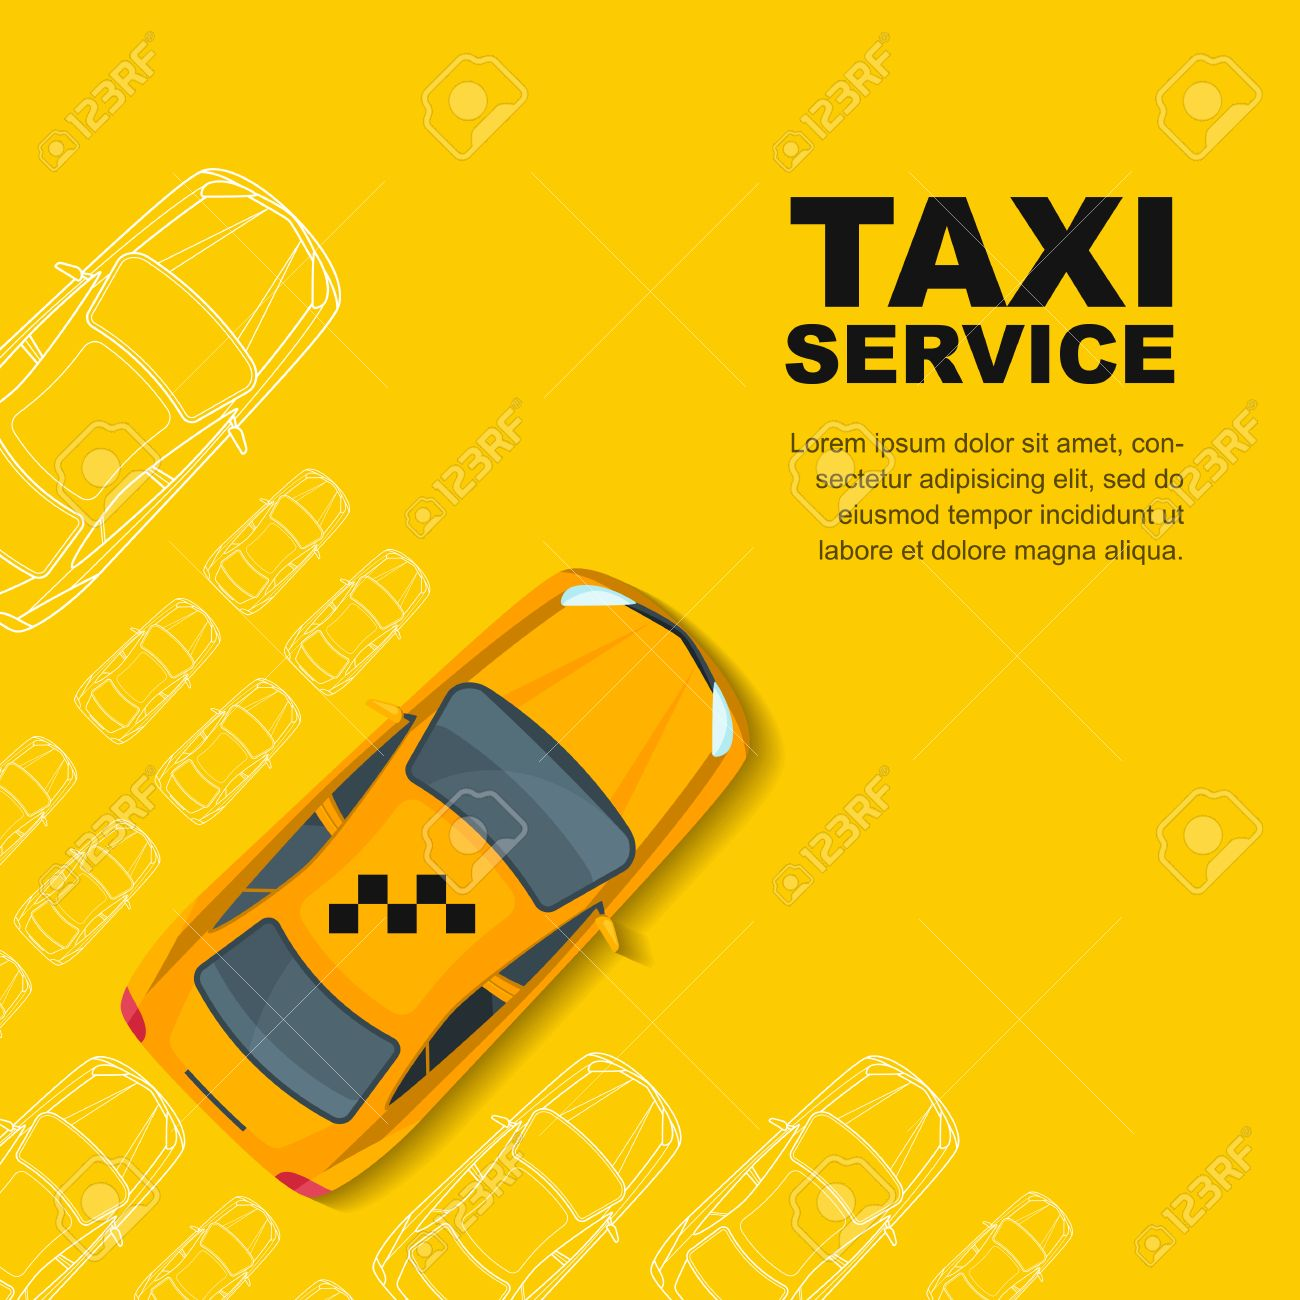 Taxi Service Concept Yellow Poster Or Background Template 1300x1300